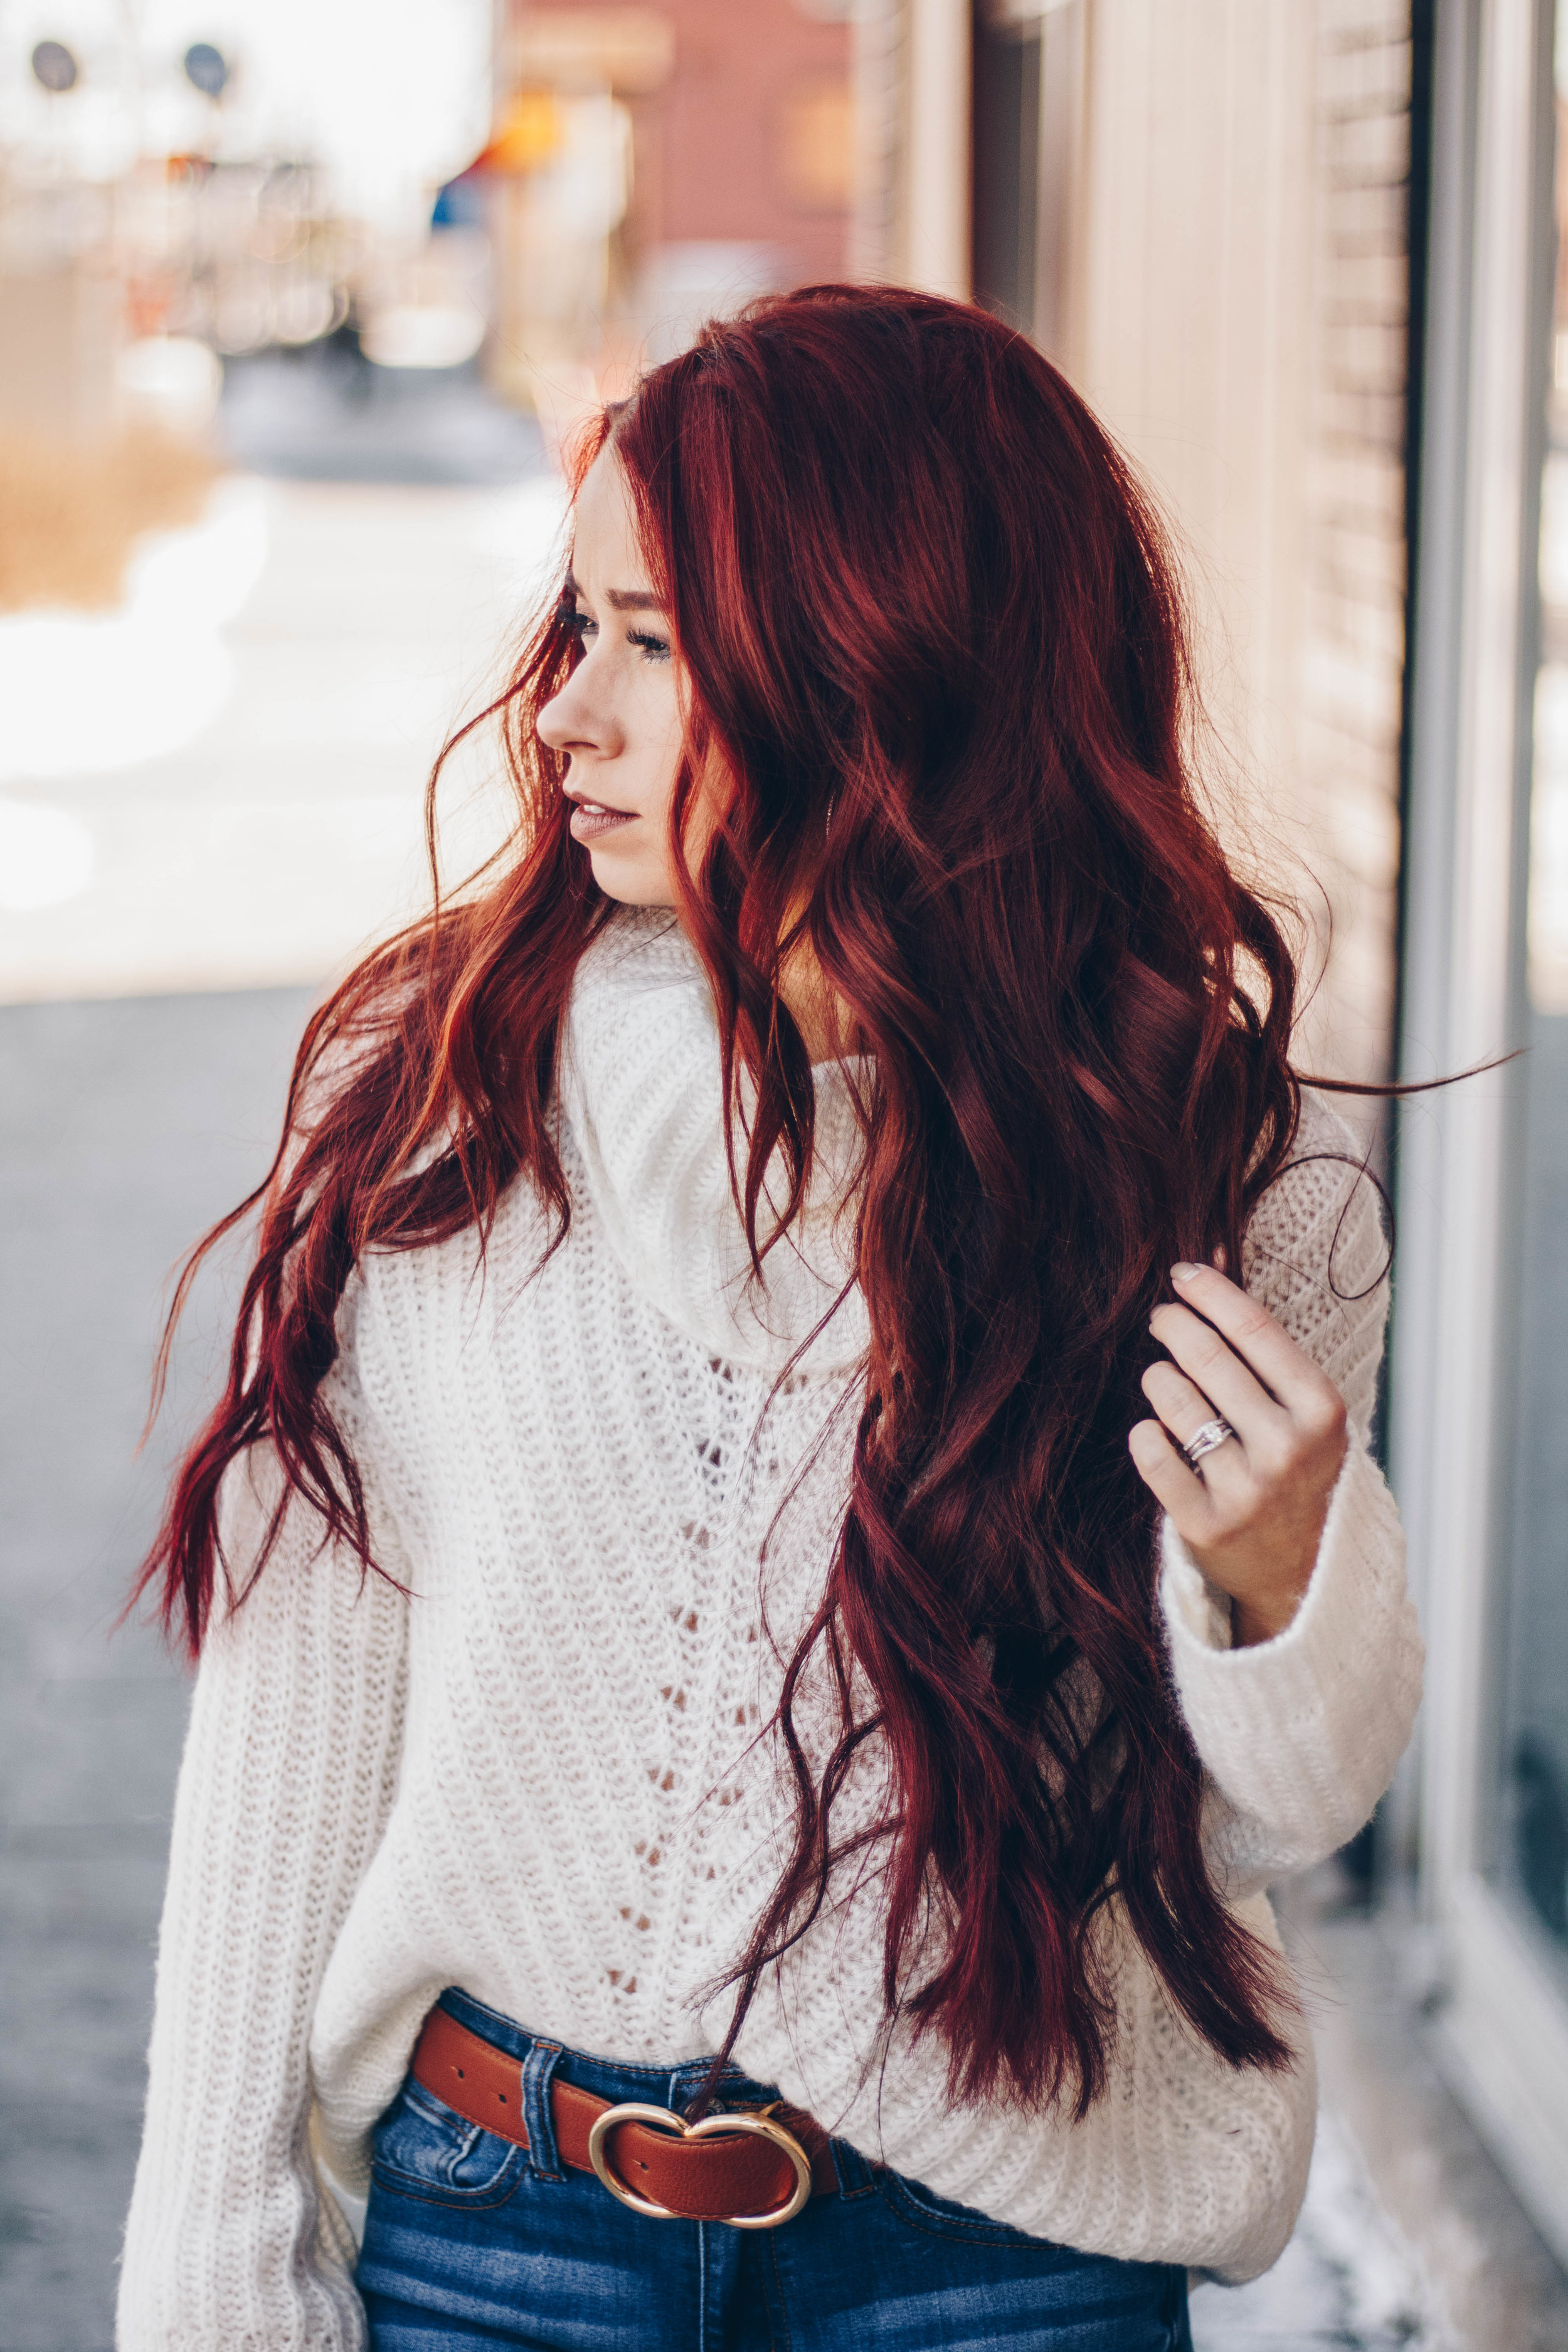 Hair Care Questions by popular Indianapolis style blogger Trendy in Indy